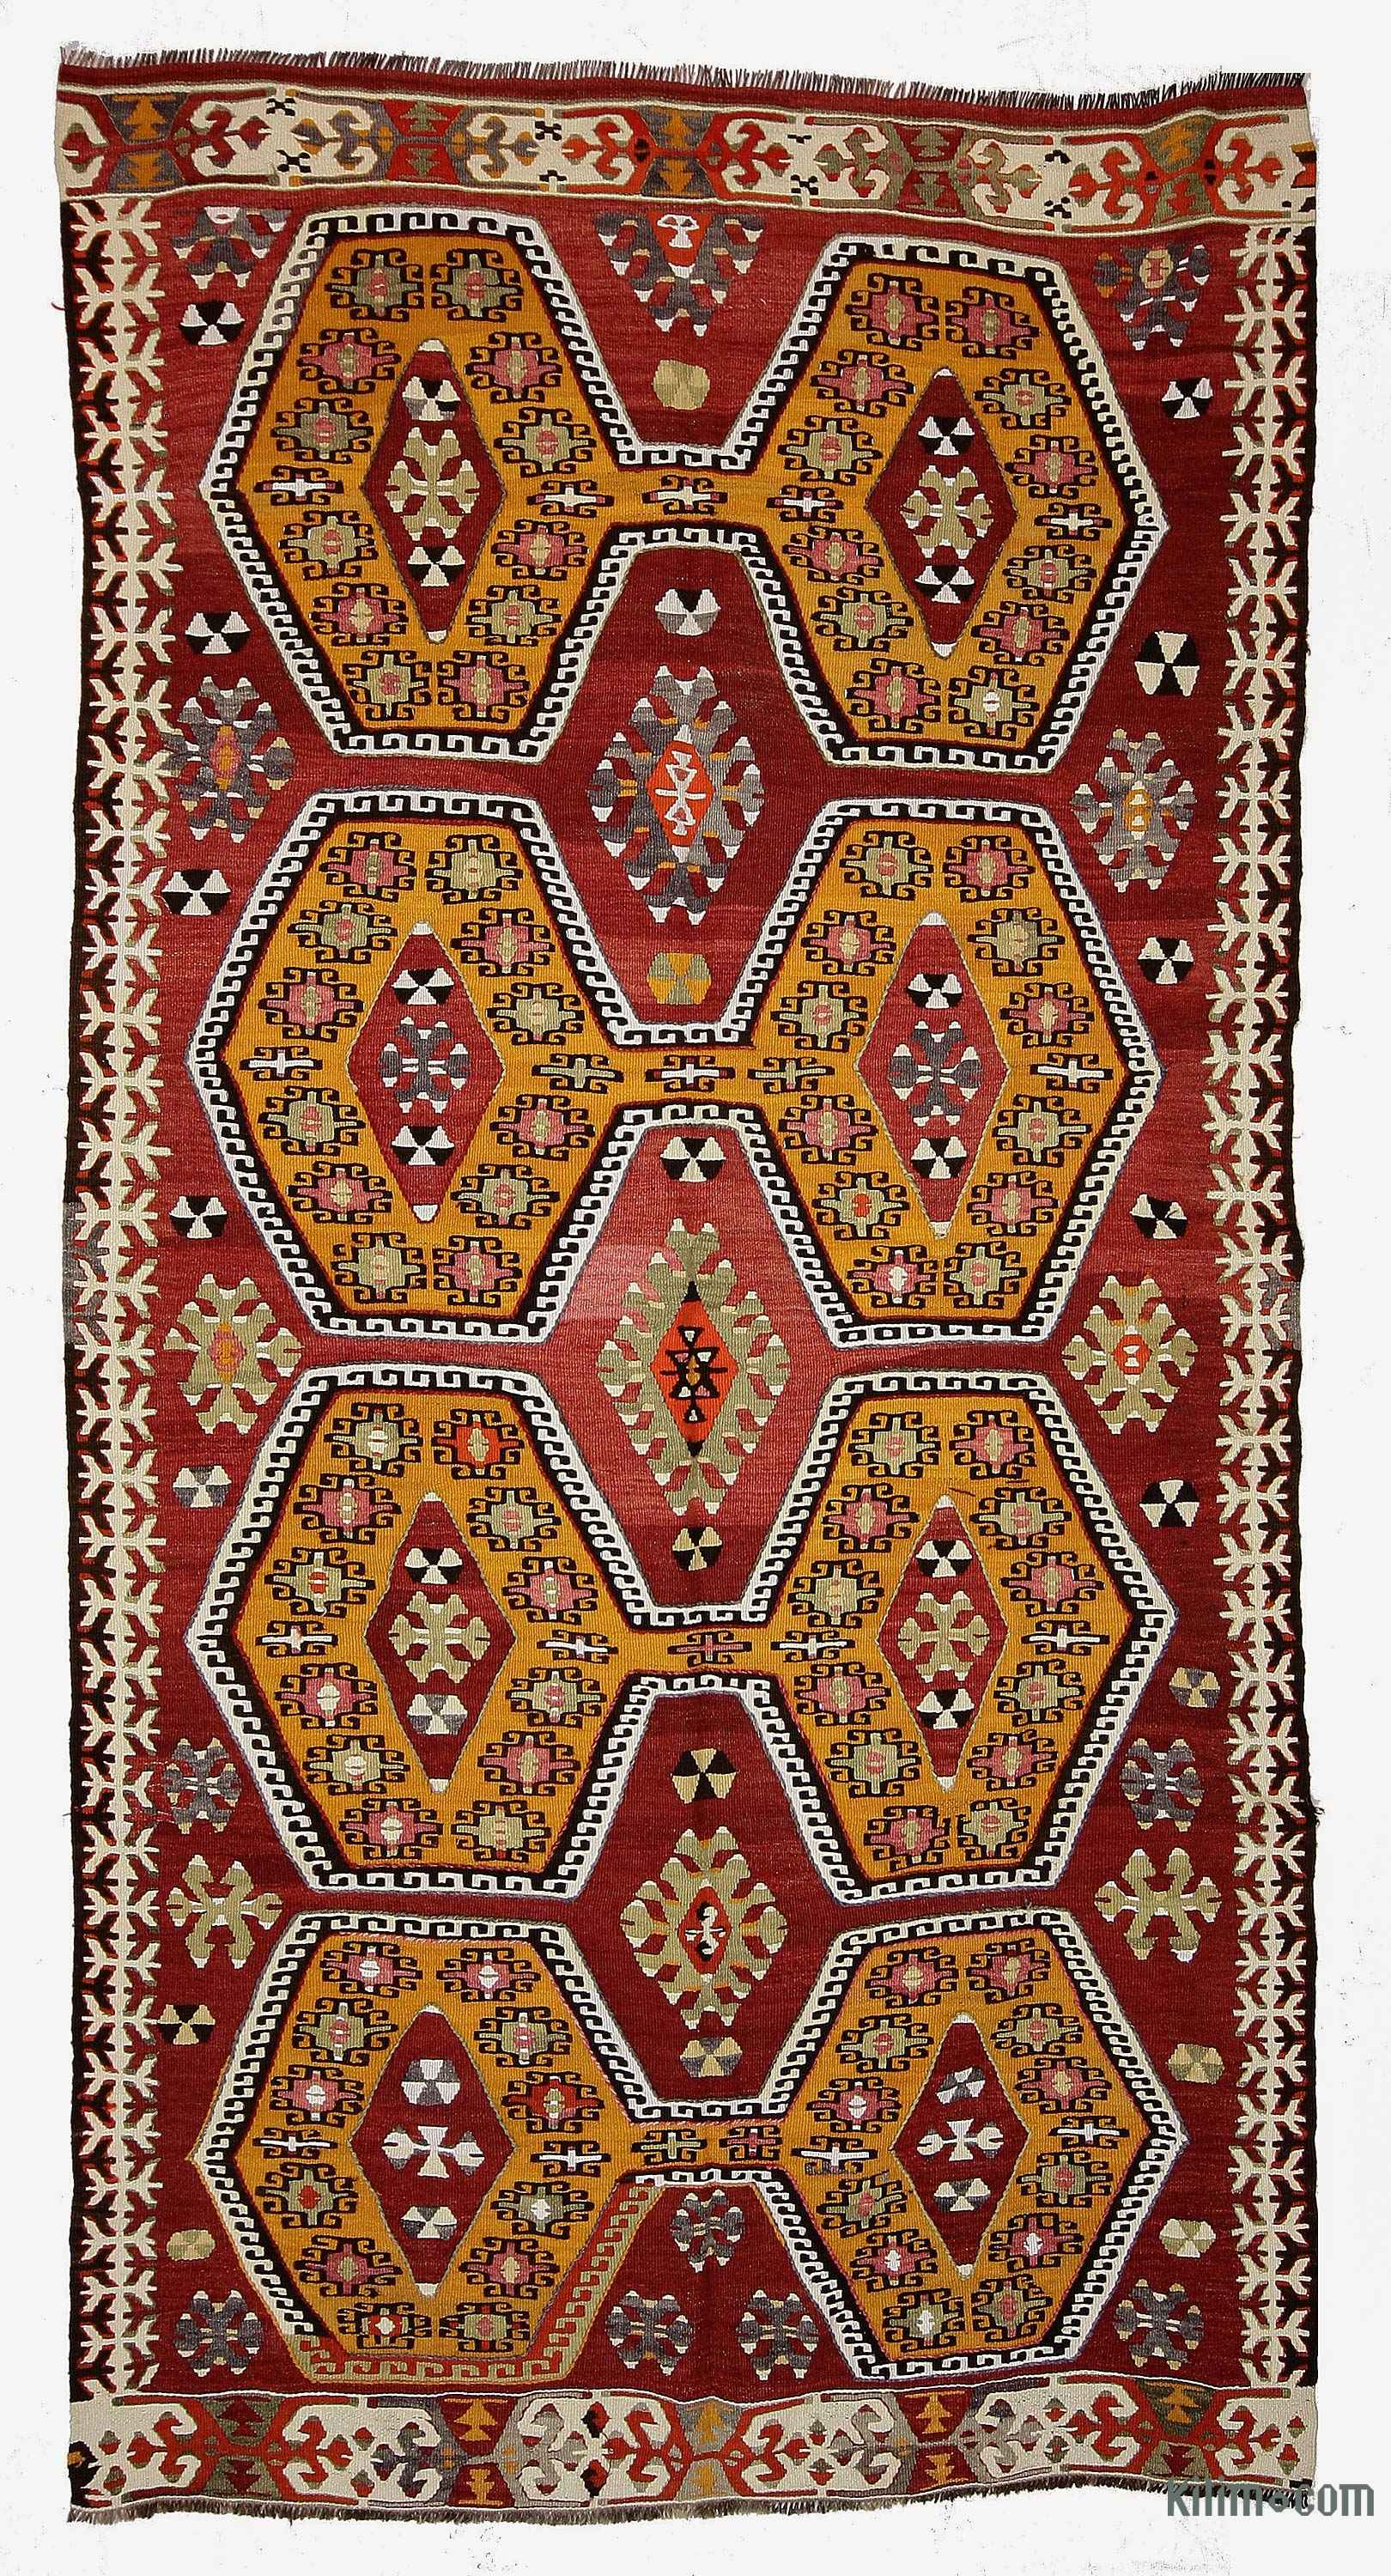 Rugs And Kilims Are The Master Elements Of Bohemian Style: Supreme Source For Vintage Oriental Rugs, Kilim Rugs